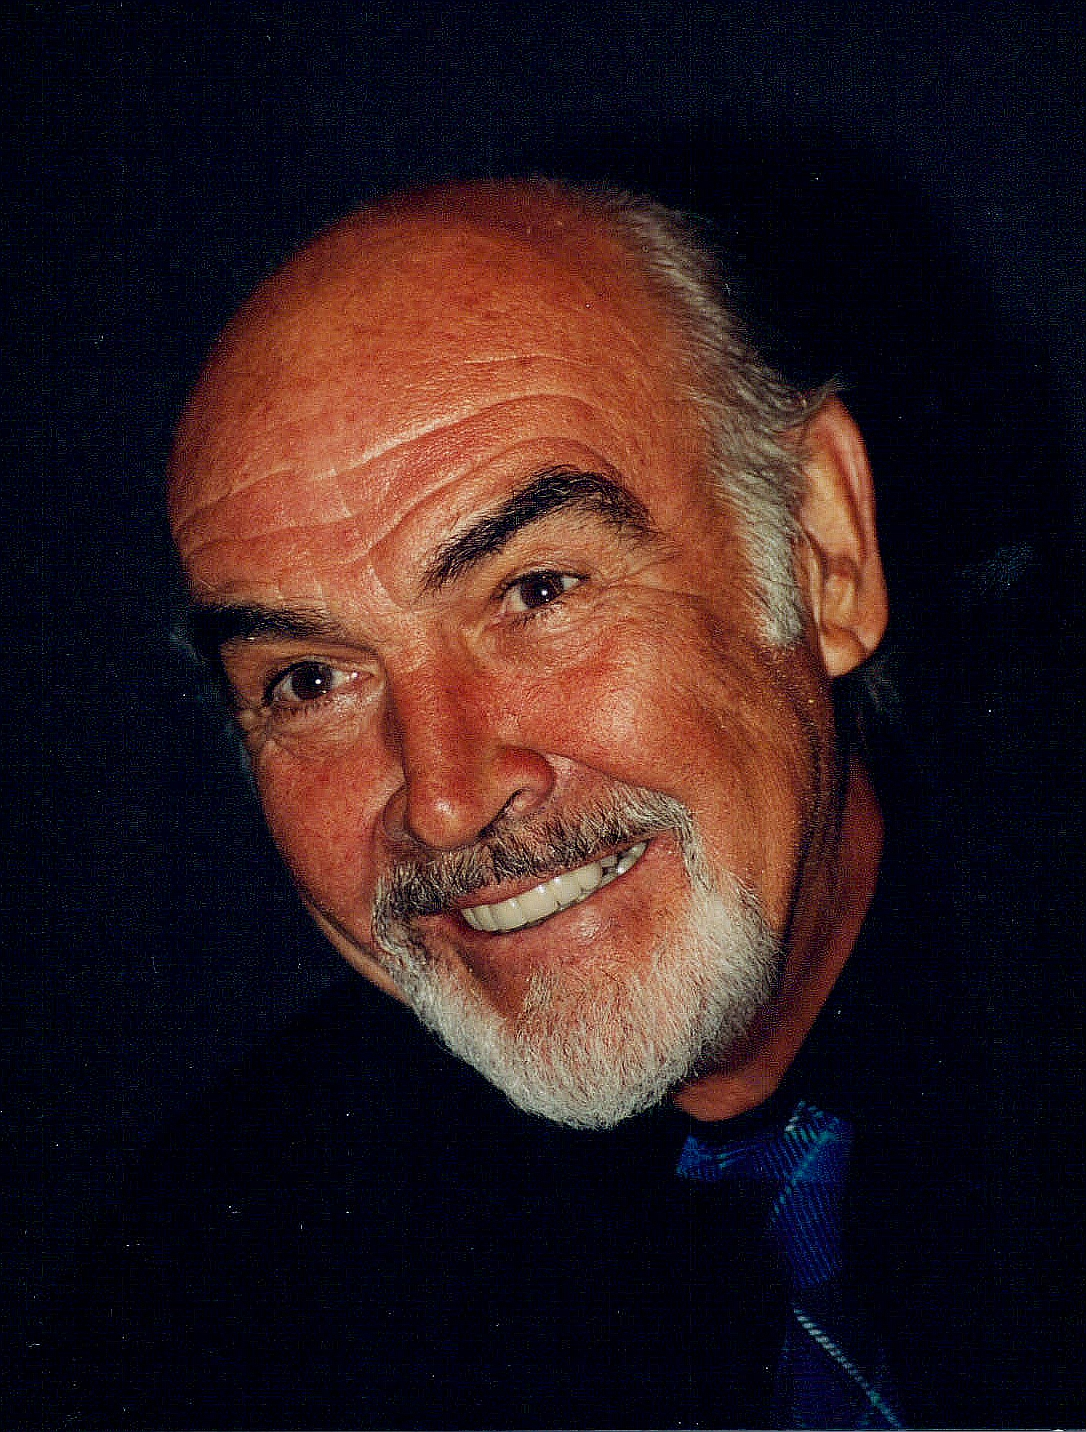 sean connery - photo #4